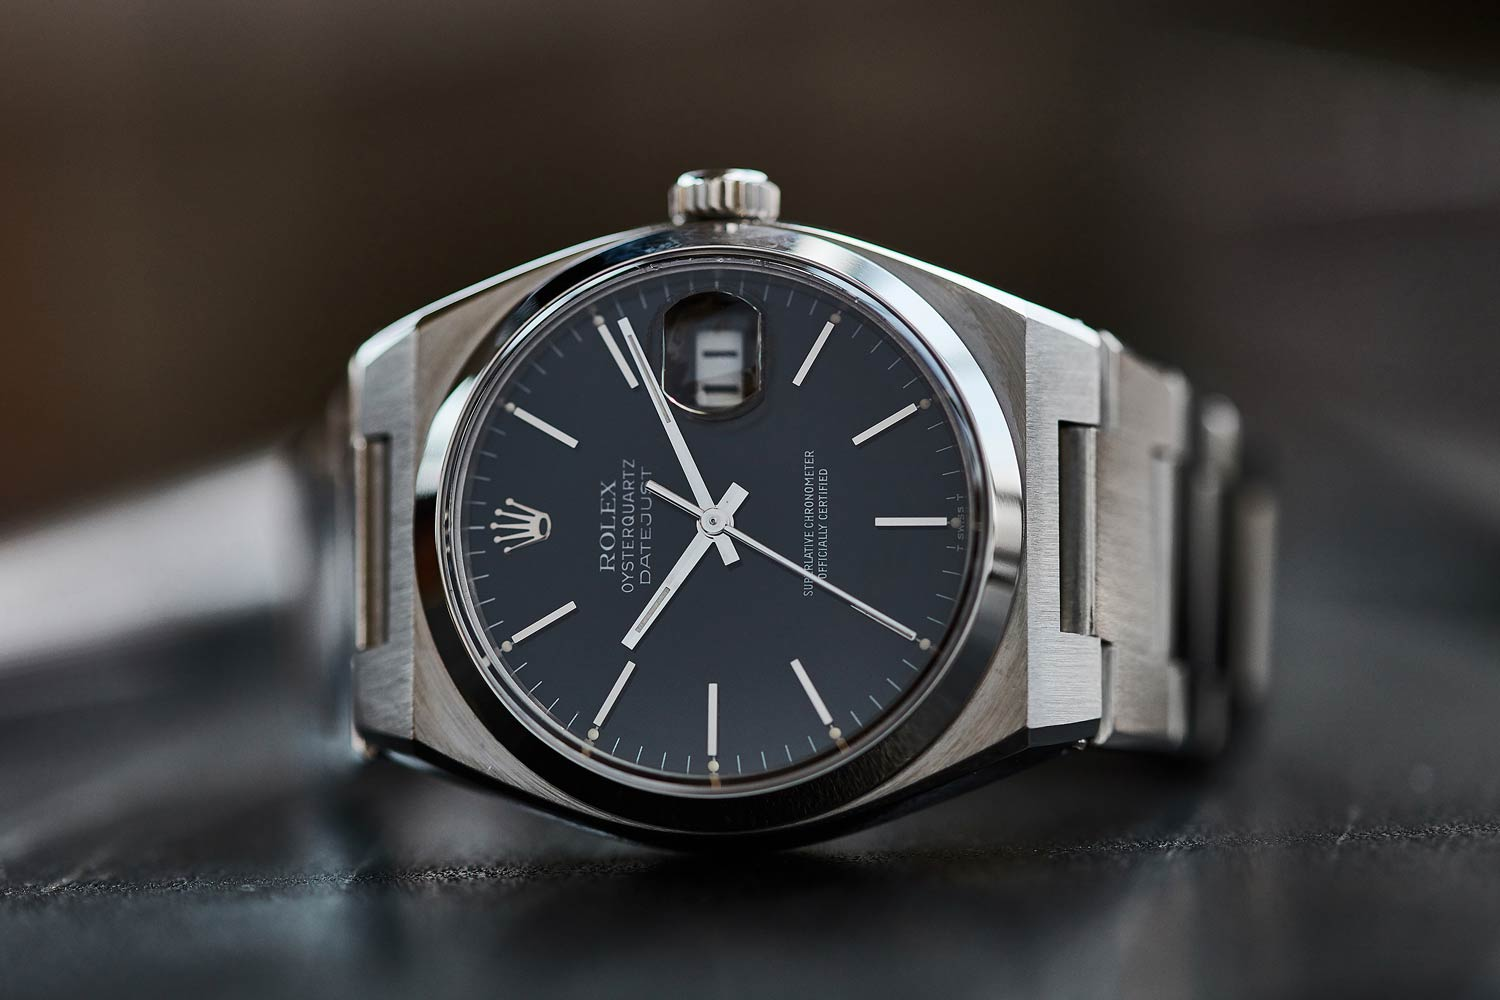 The Rolex Oysterquartz Ref. 17000 watch from the 1980s (Images: A Collected Man)